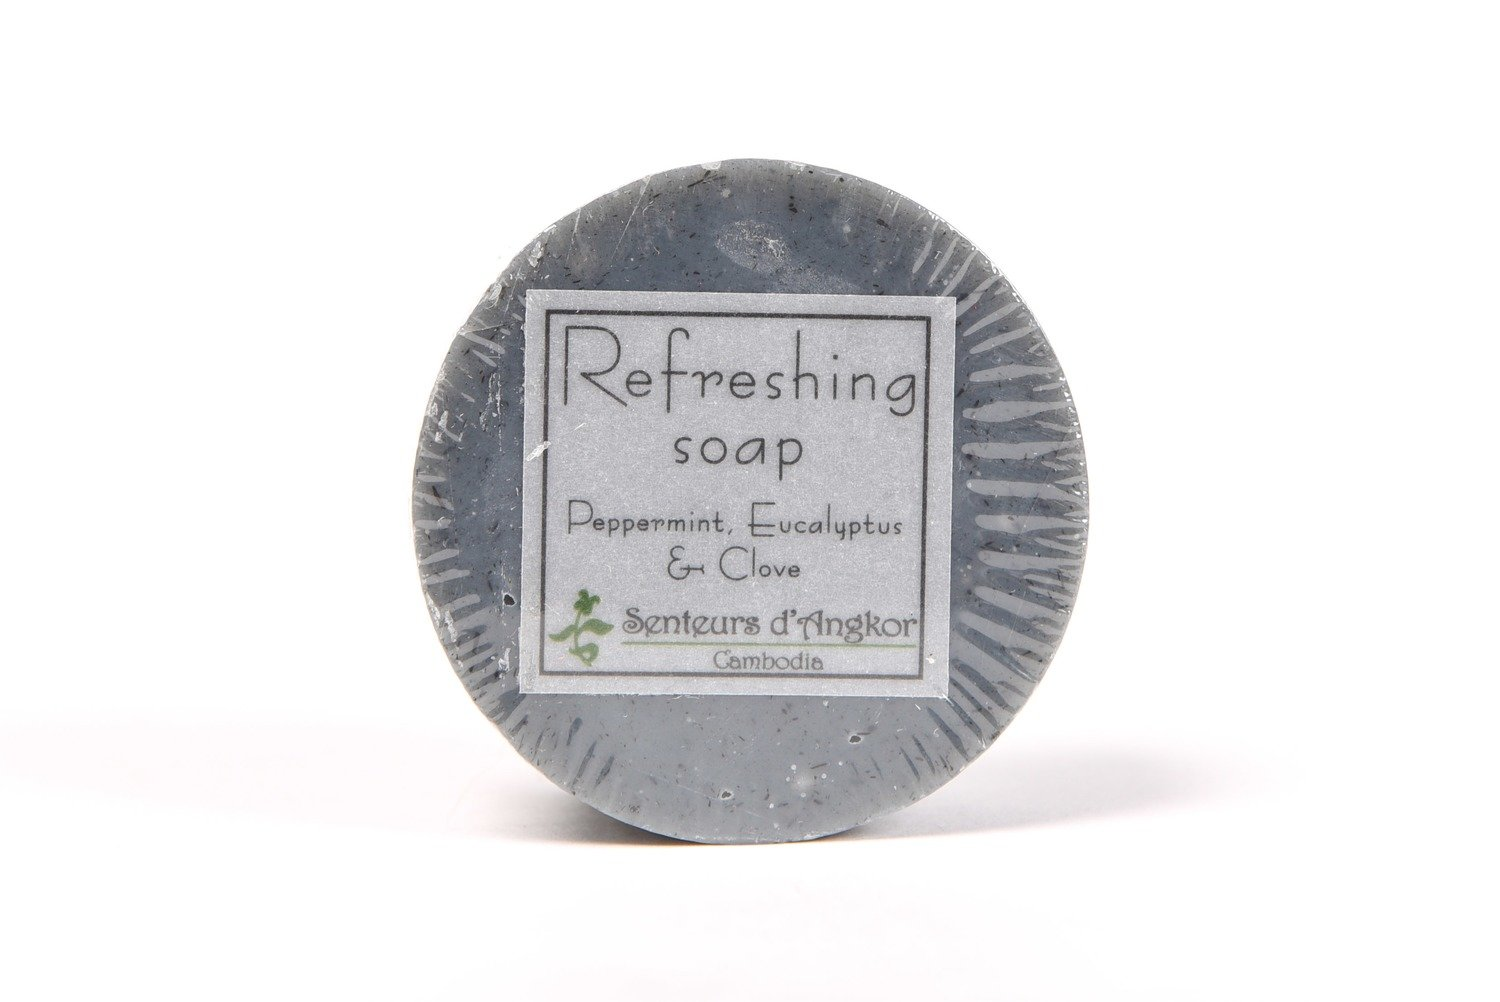 Natural Soap - Refreshing